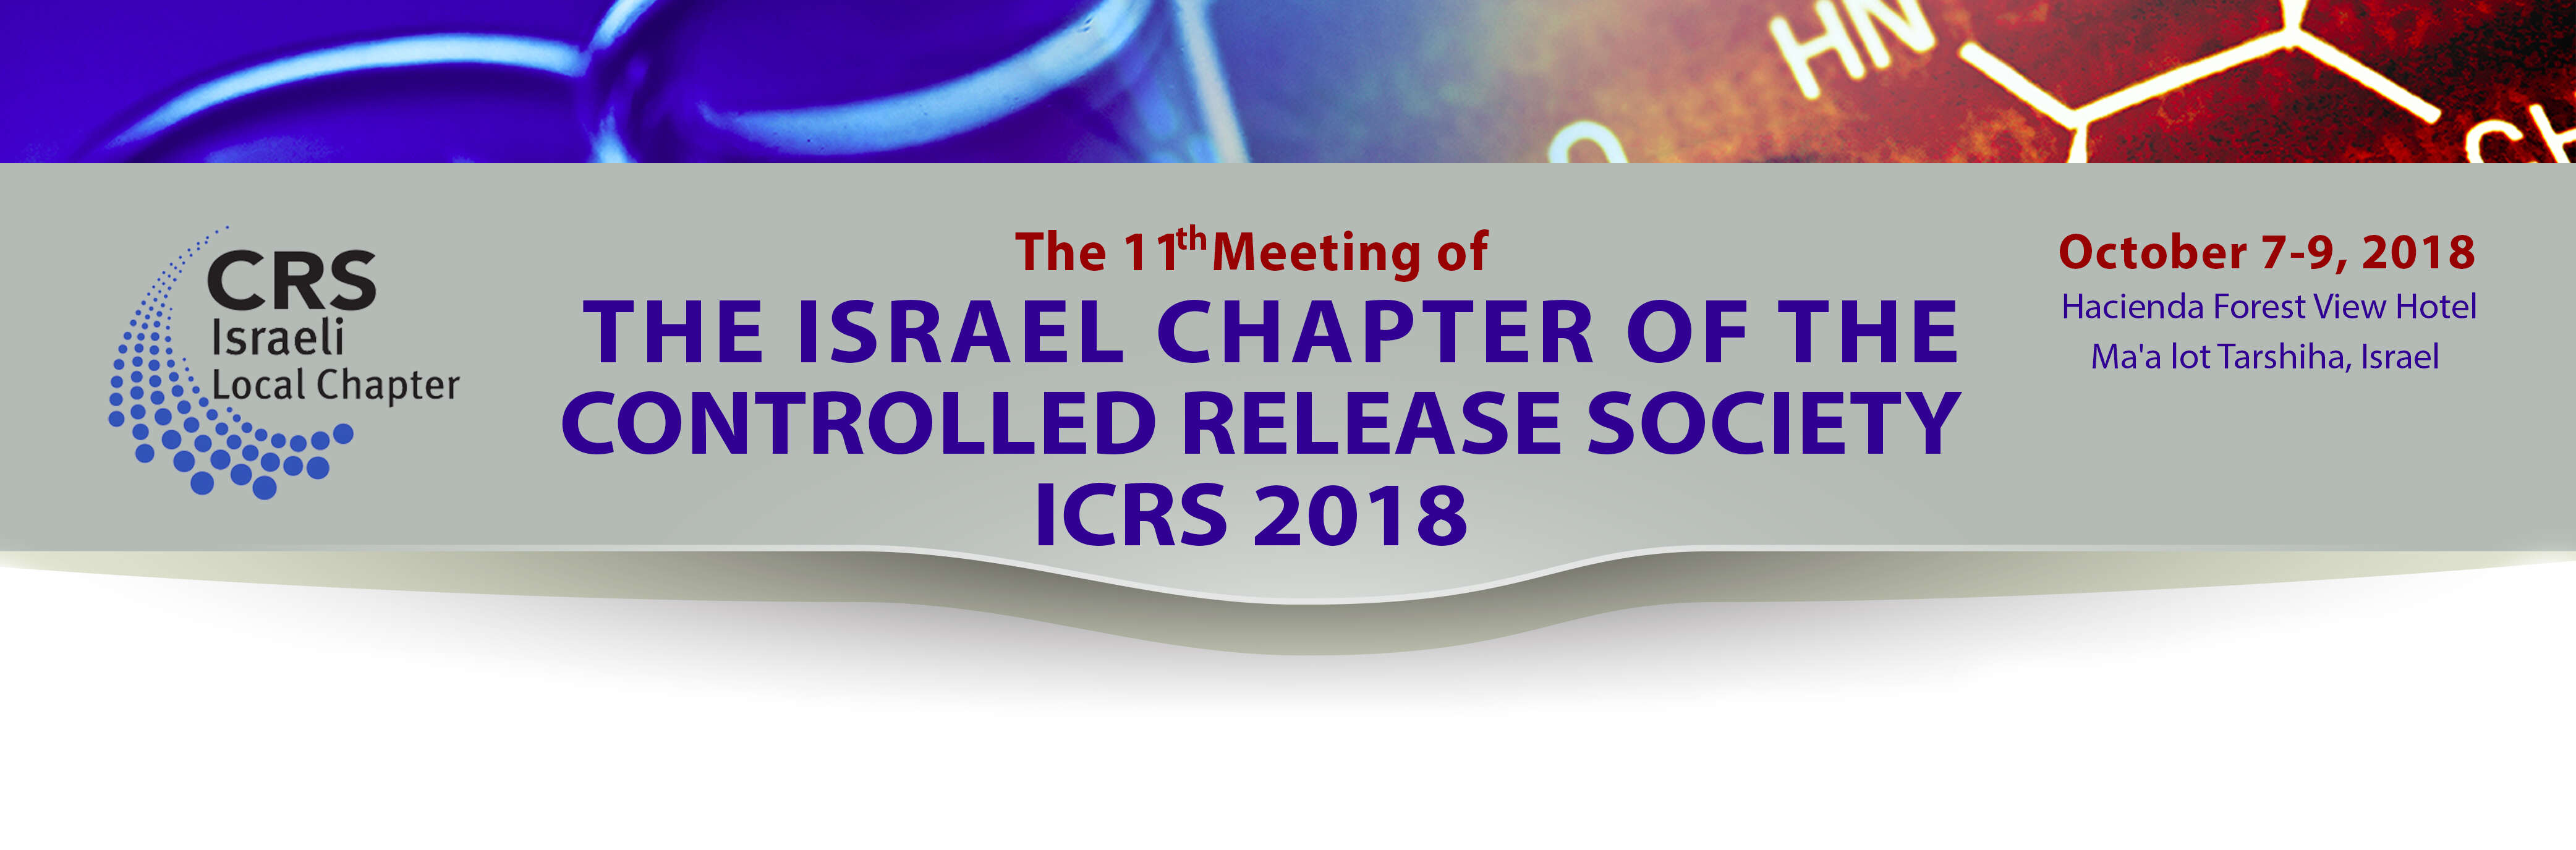 11th meeting of the Israel Chapter of The Controlled Release Society (ICRS)